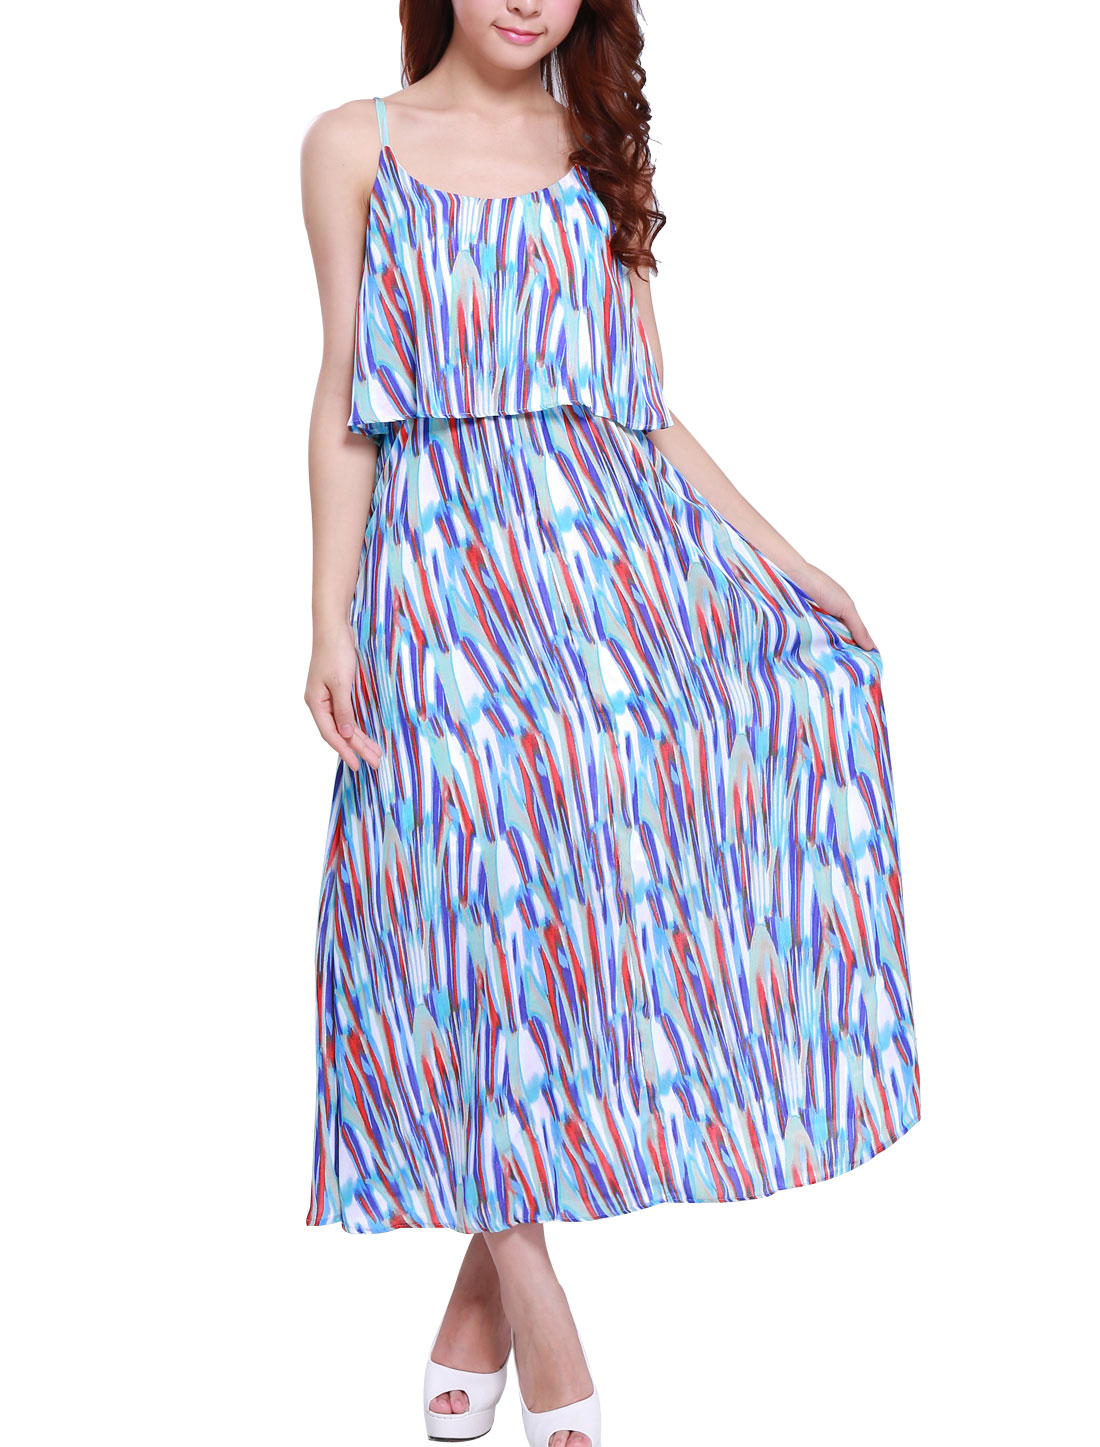 Women's Elastic Waist Allover Print Summer Fit Chiffon Dress Purple XS